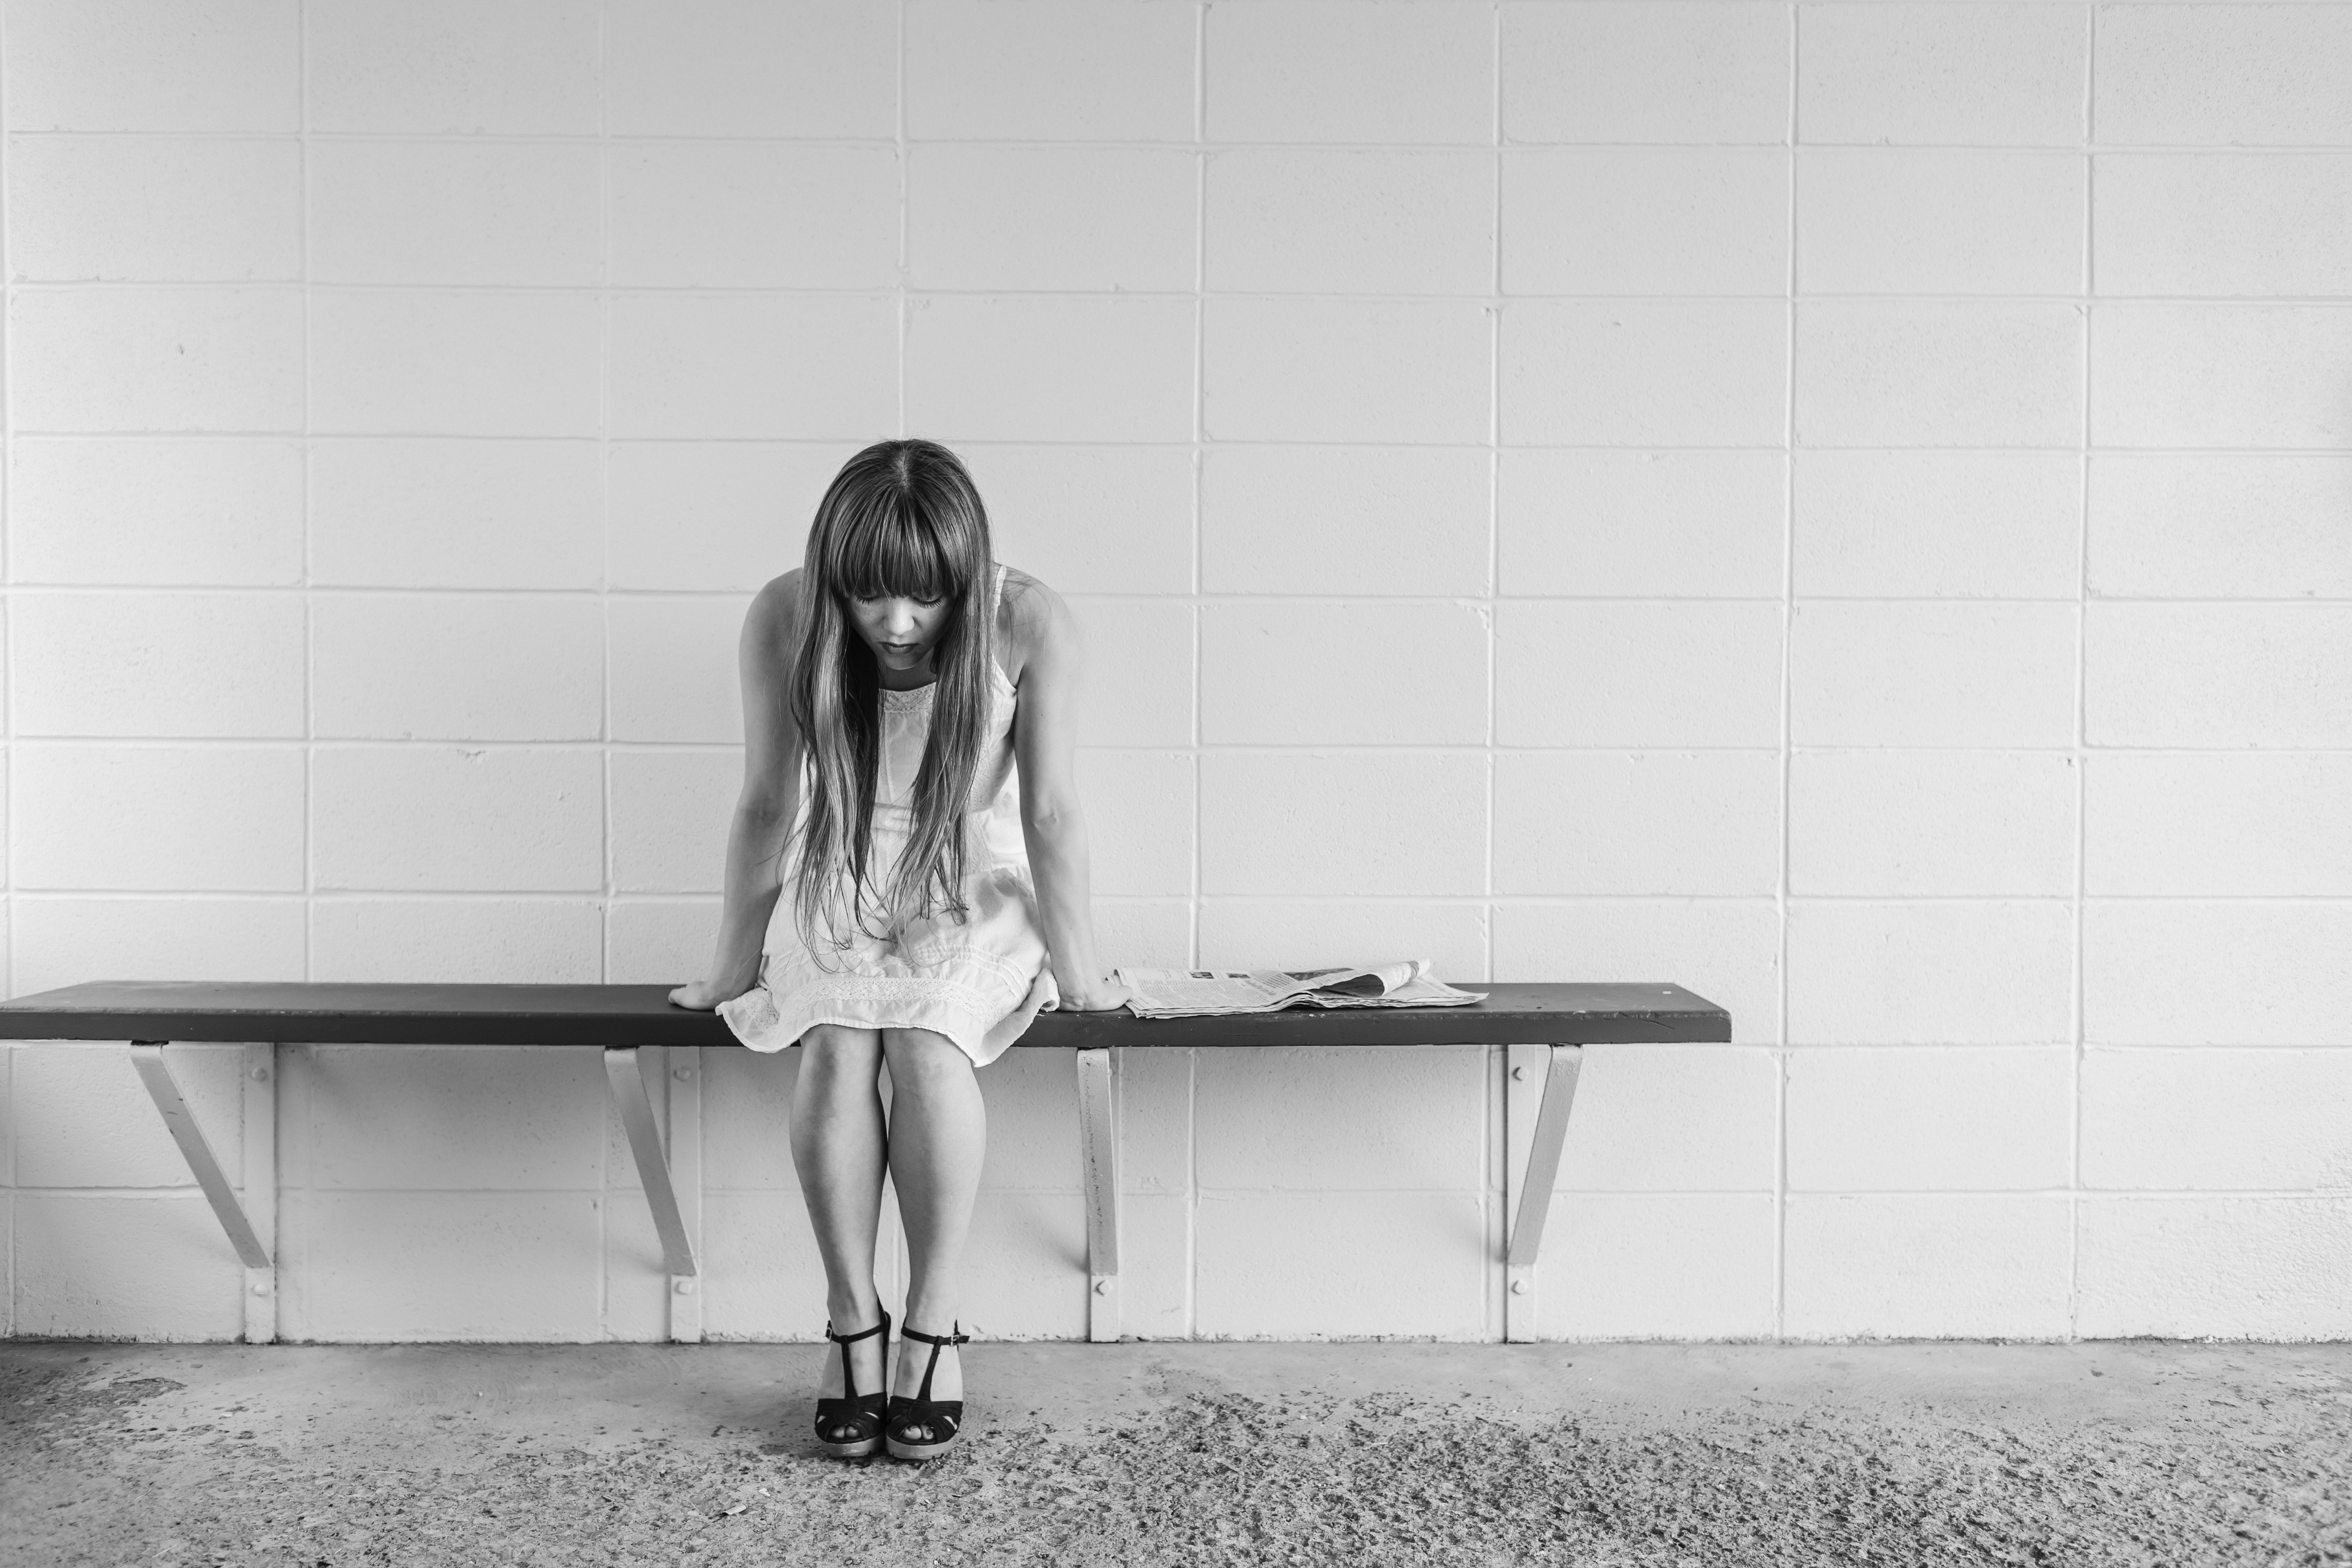 black and white image of a depressed person sitting on a bench